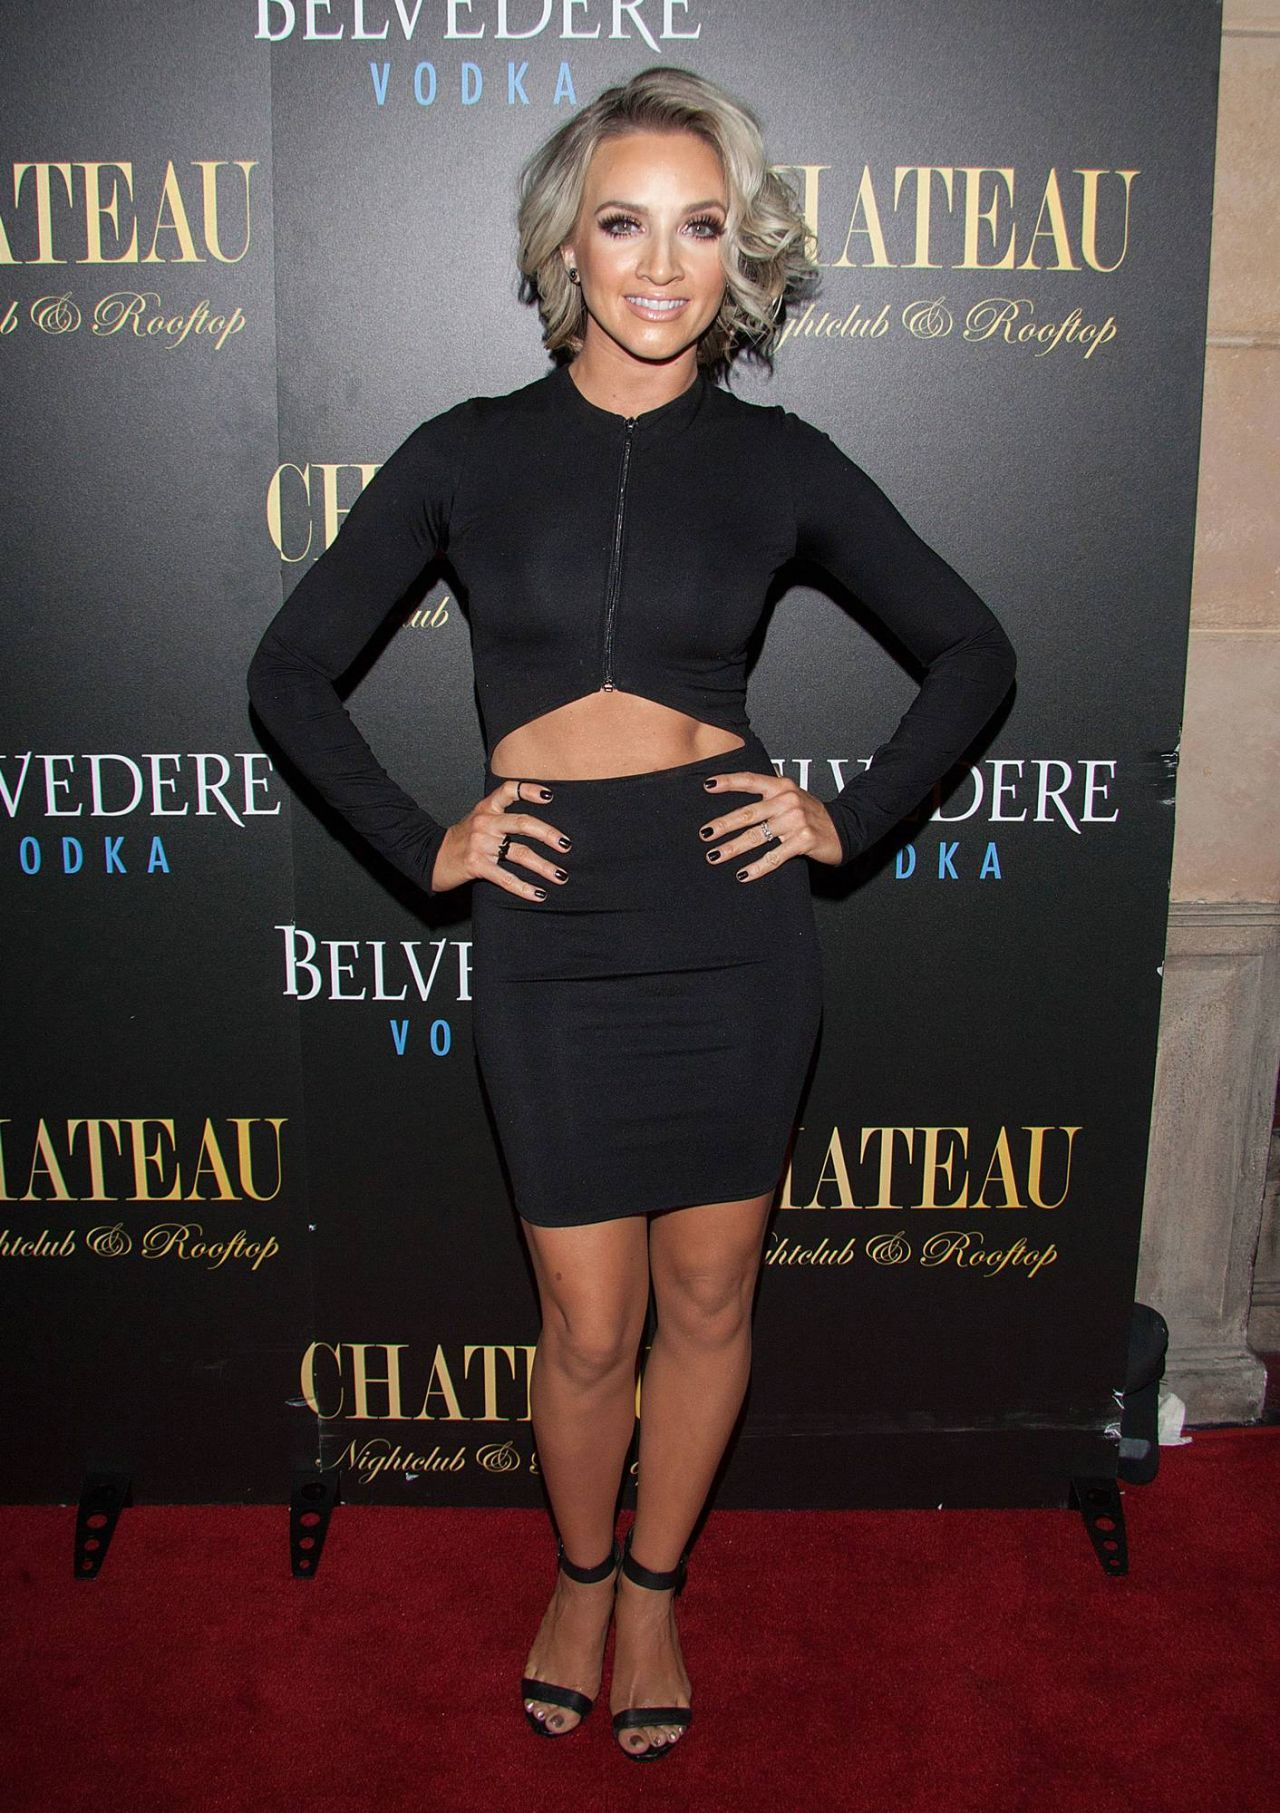 Luxe7 Celebrity Interview (Vault): Shannon Bex from Making ... |Danity Kane Shannon Bex Husband